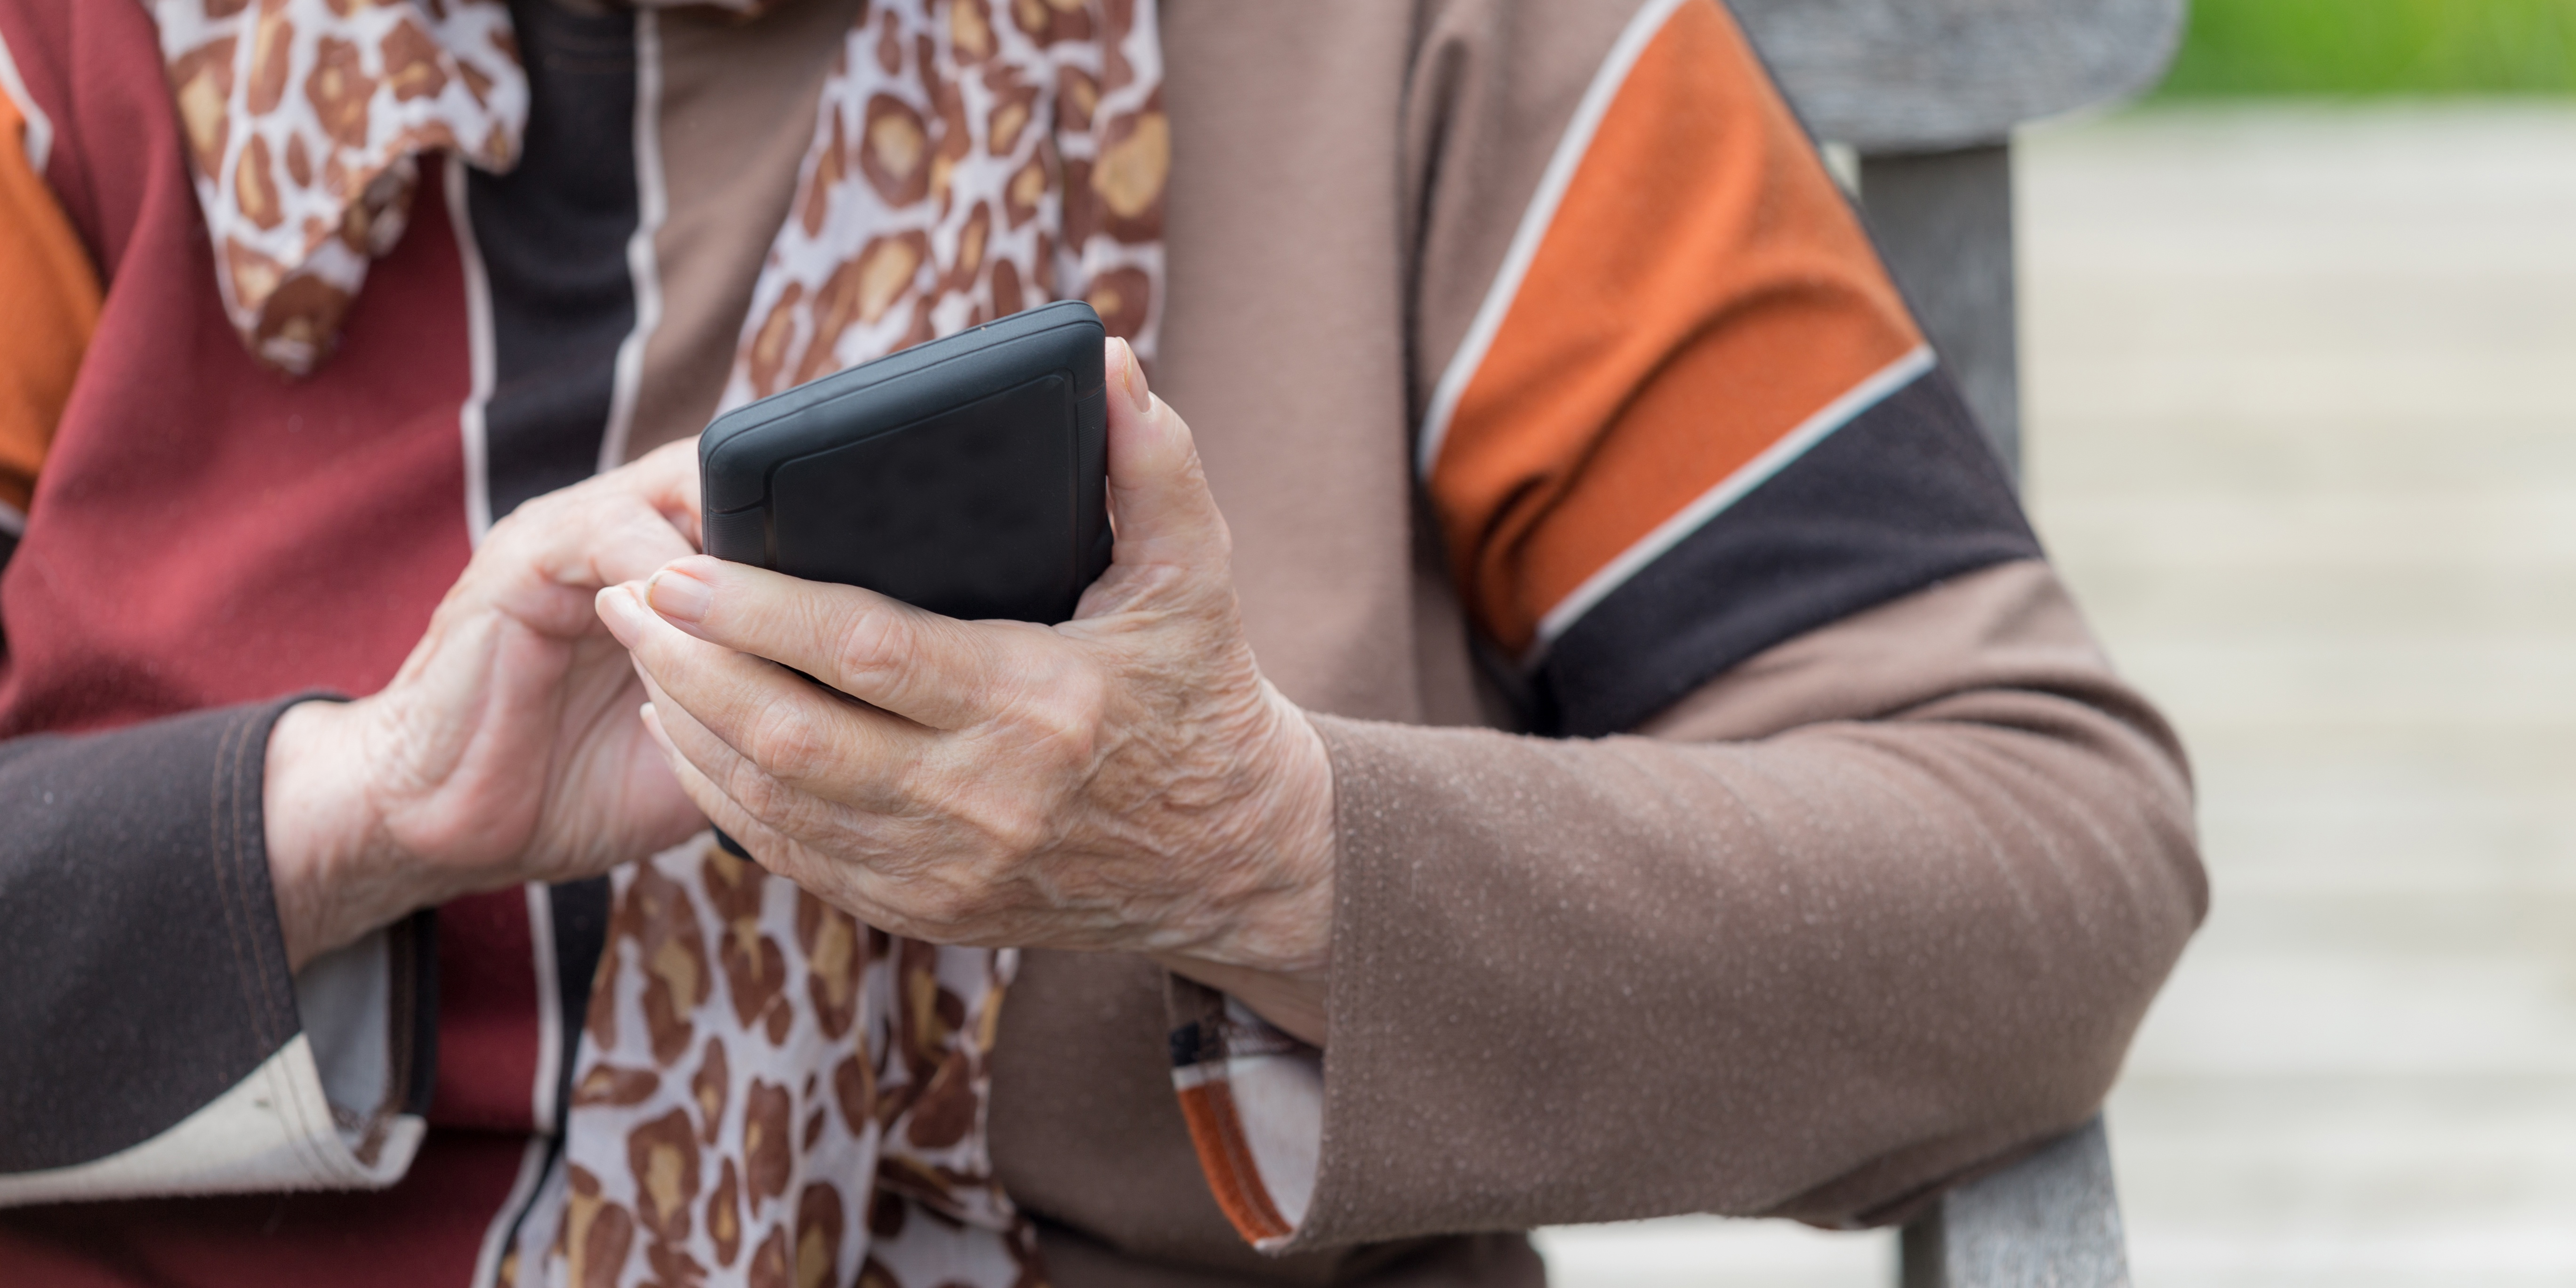 older woman hand with phone